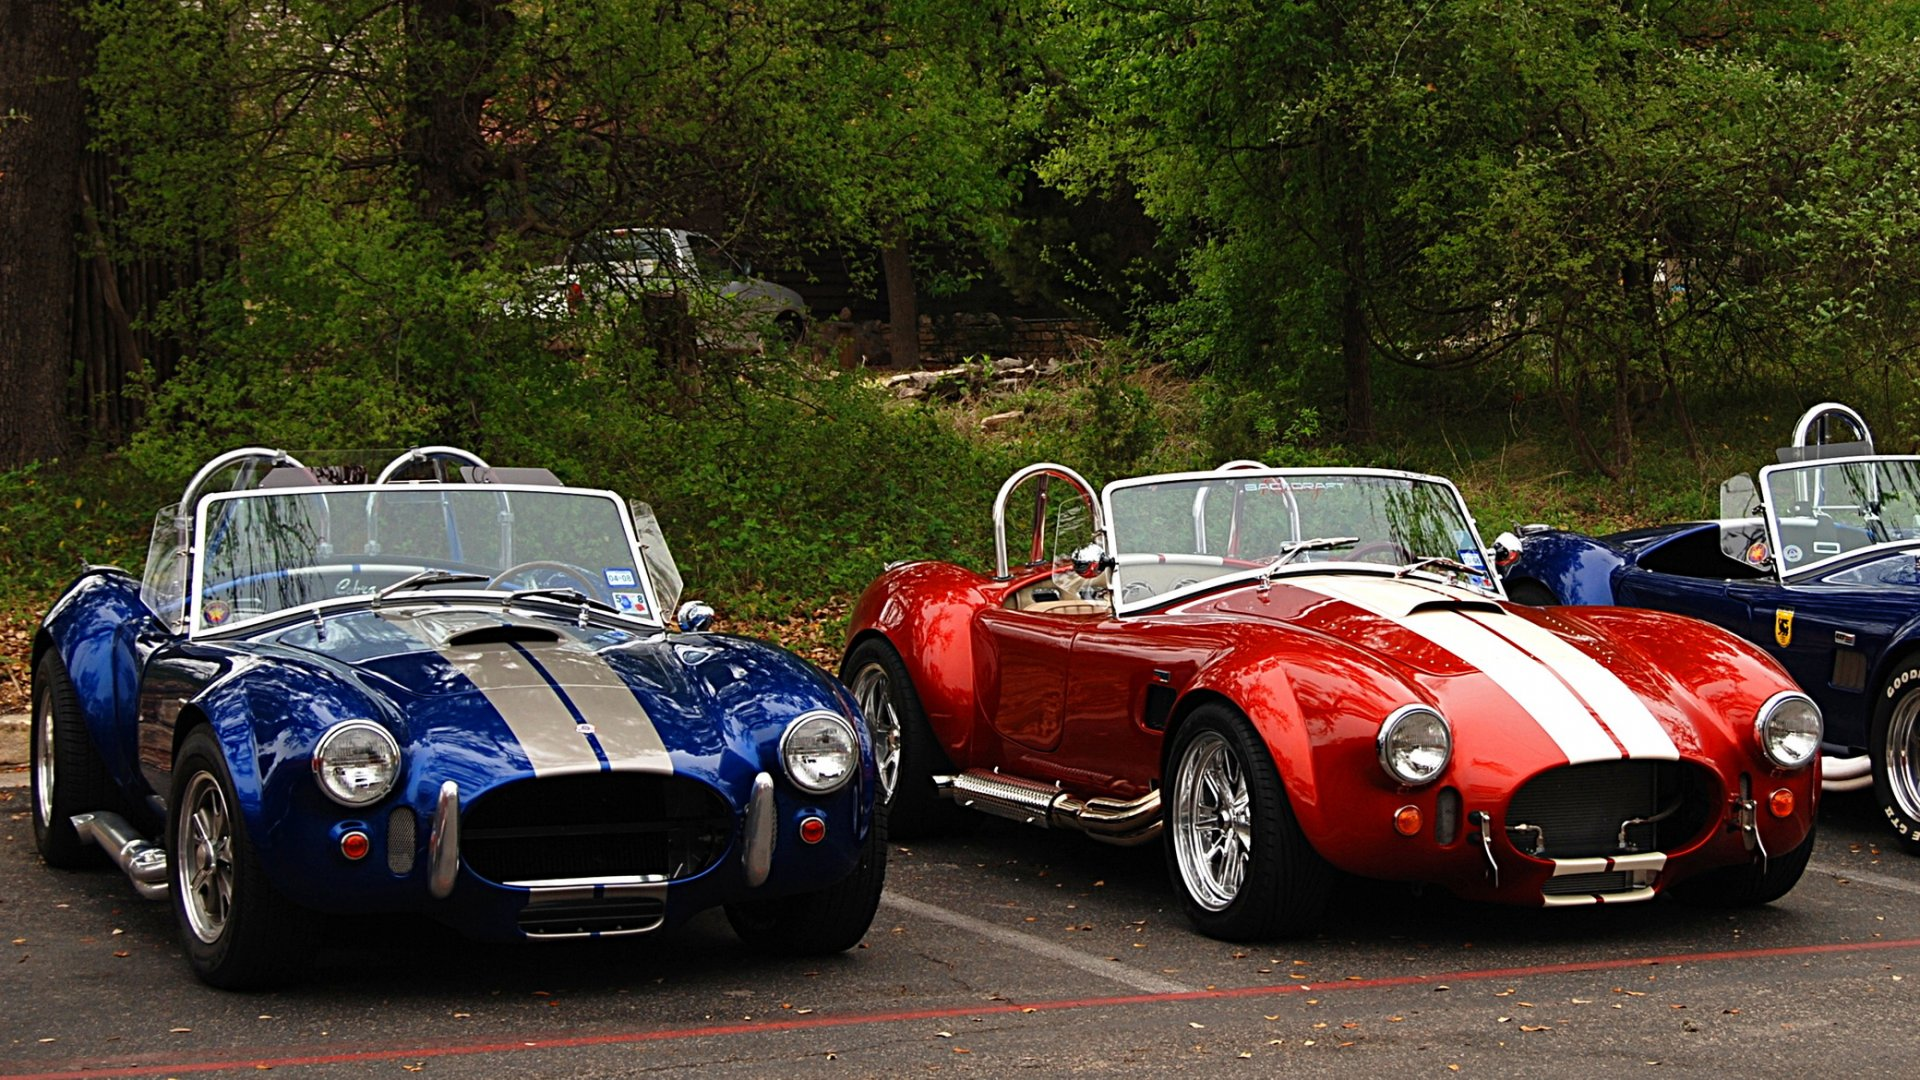 Shelby Super Cobra Hot Rod muscle cars 1920x1080 - 1920x1080 - Linus ...